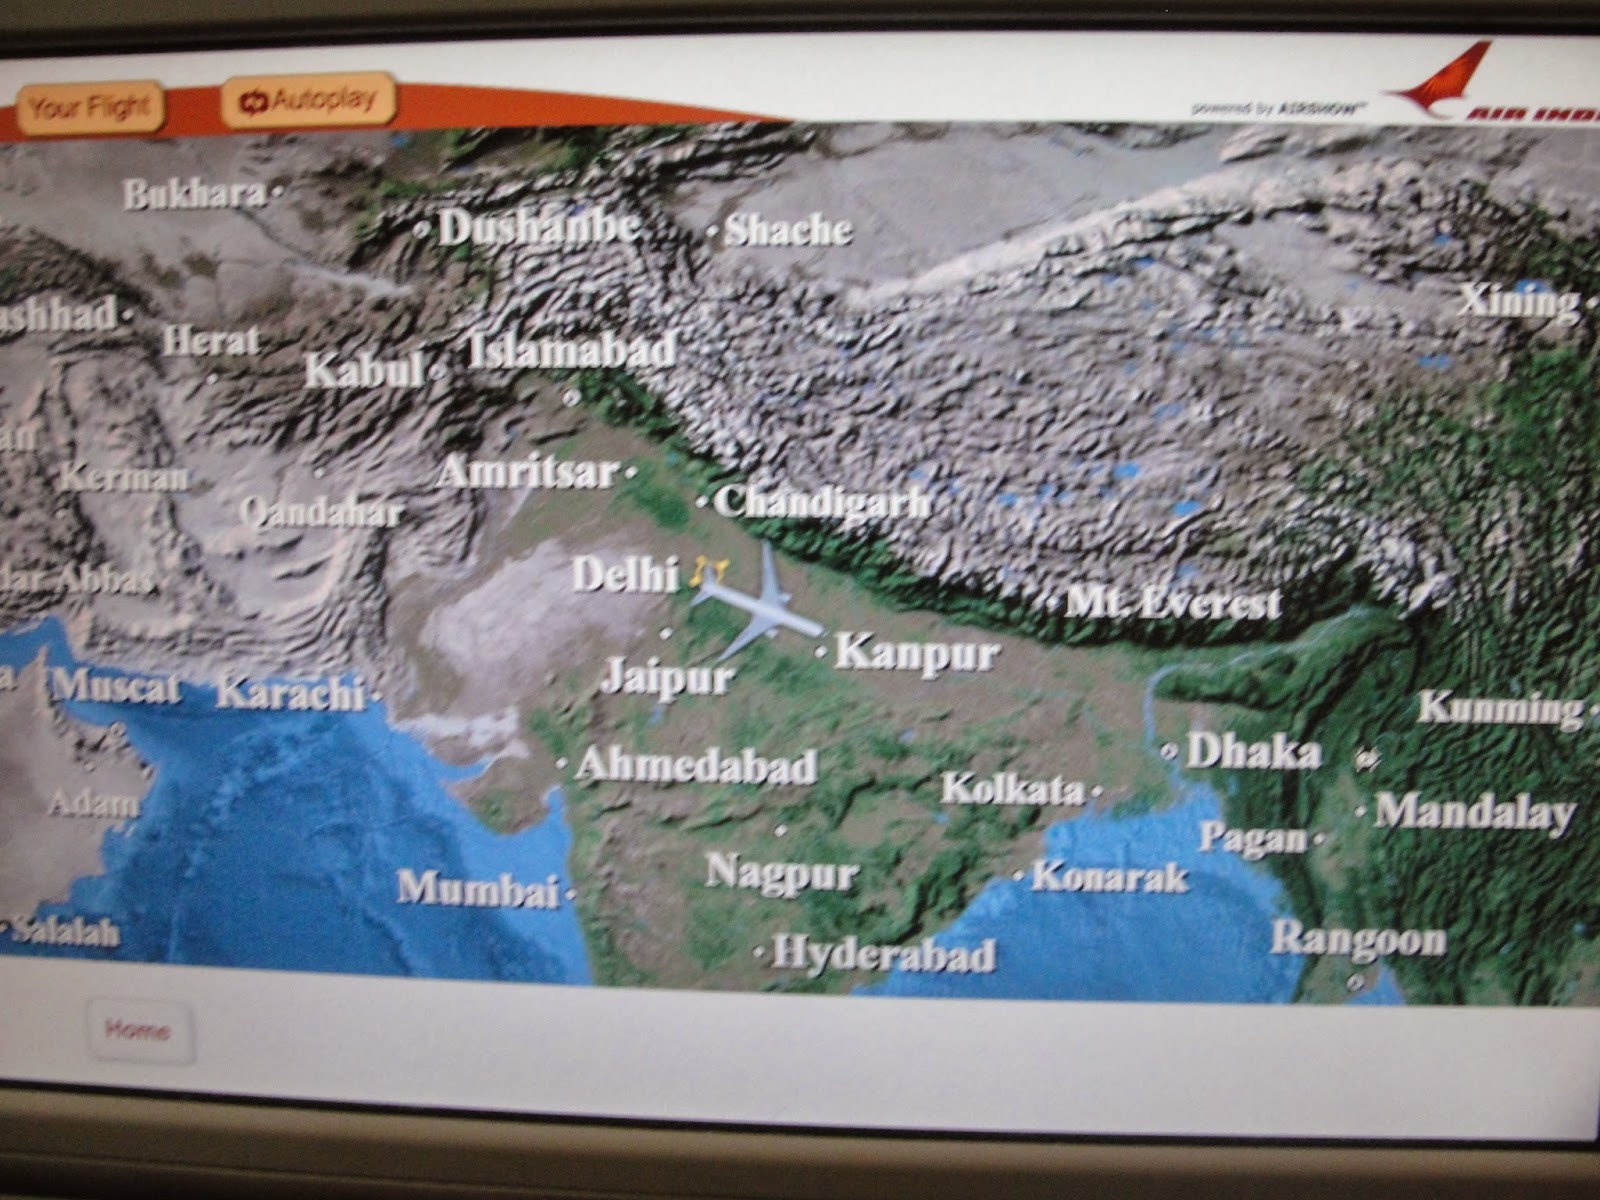 the normal moving map our route took us over the fertile gangetic plans of northern and eastern india throughout the whole of the flight